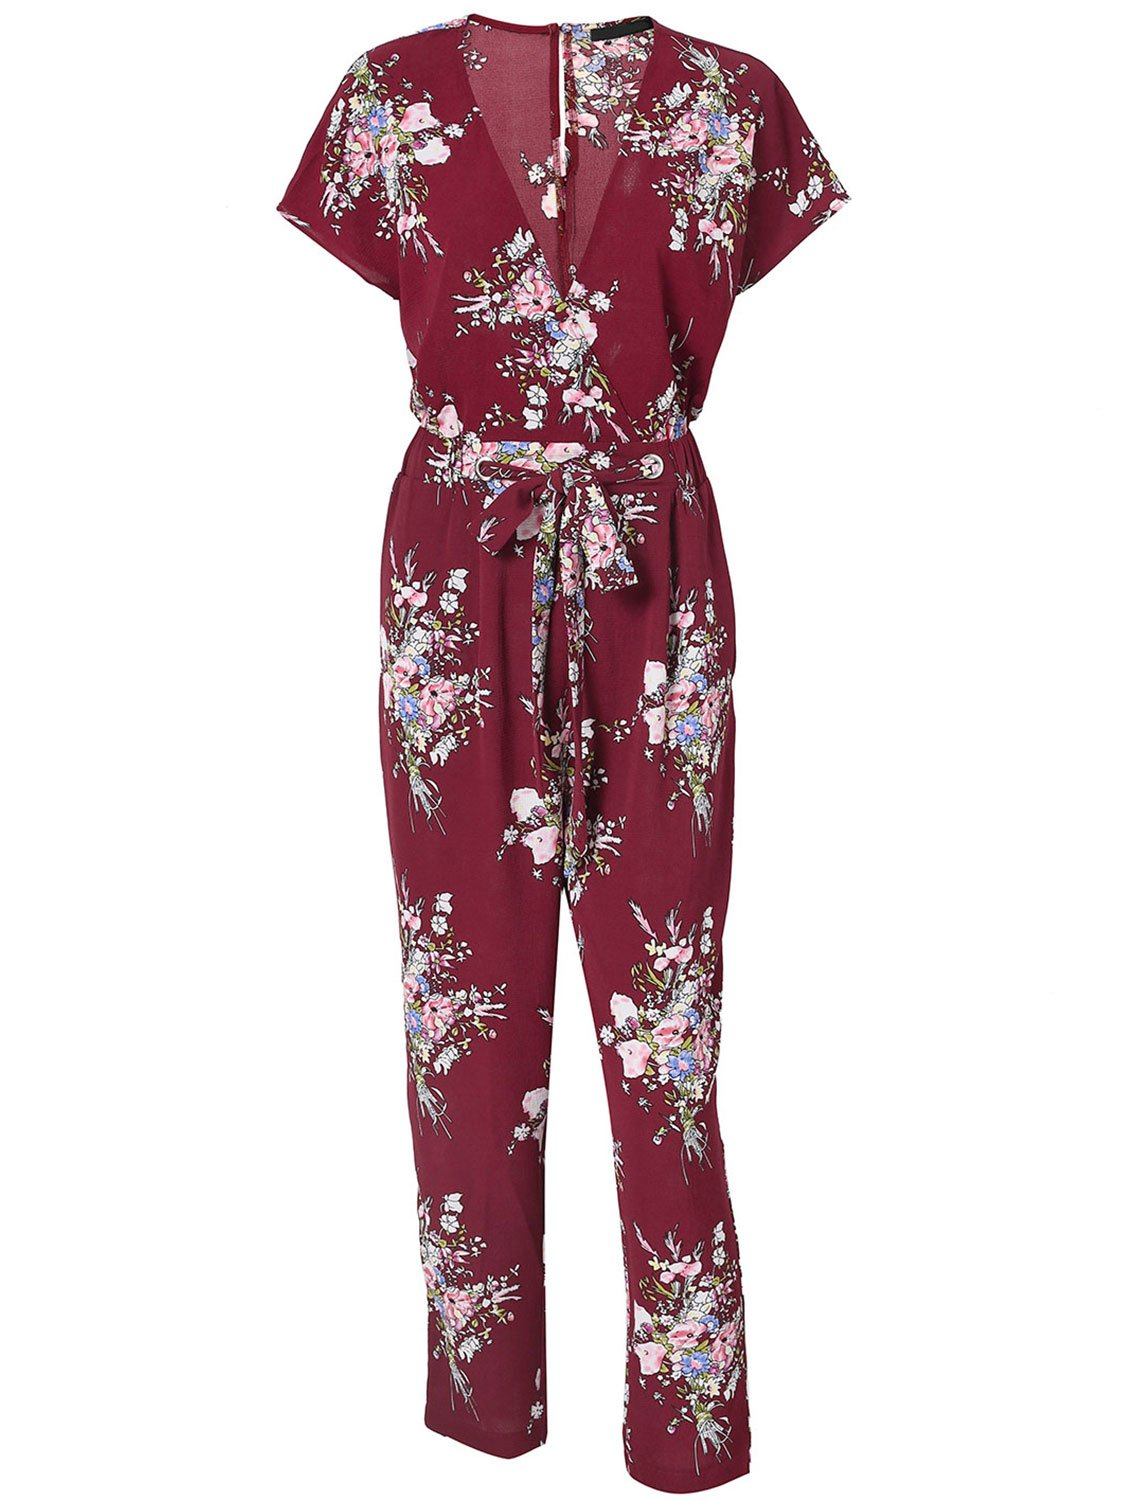 Missy Chilli Women's Floral Print Short Sleeve V Neck Wrap Jumpsuit Tie Waist Wine Red US 12